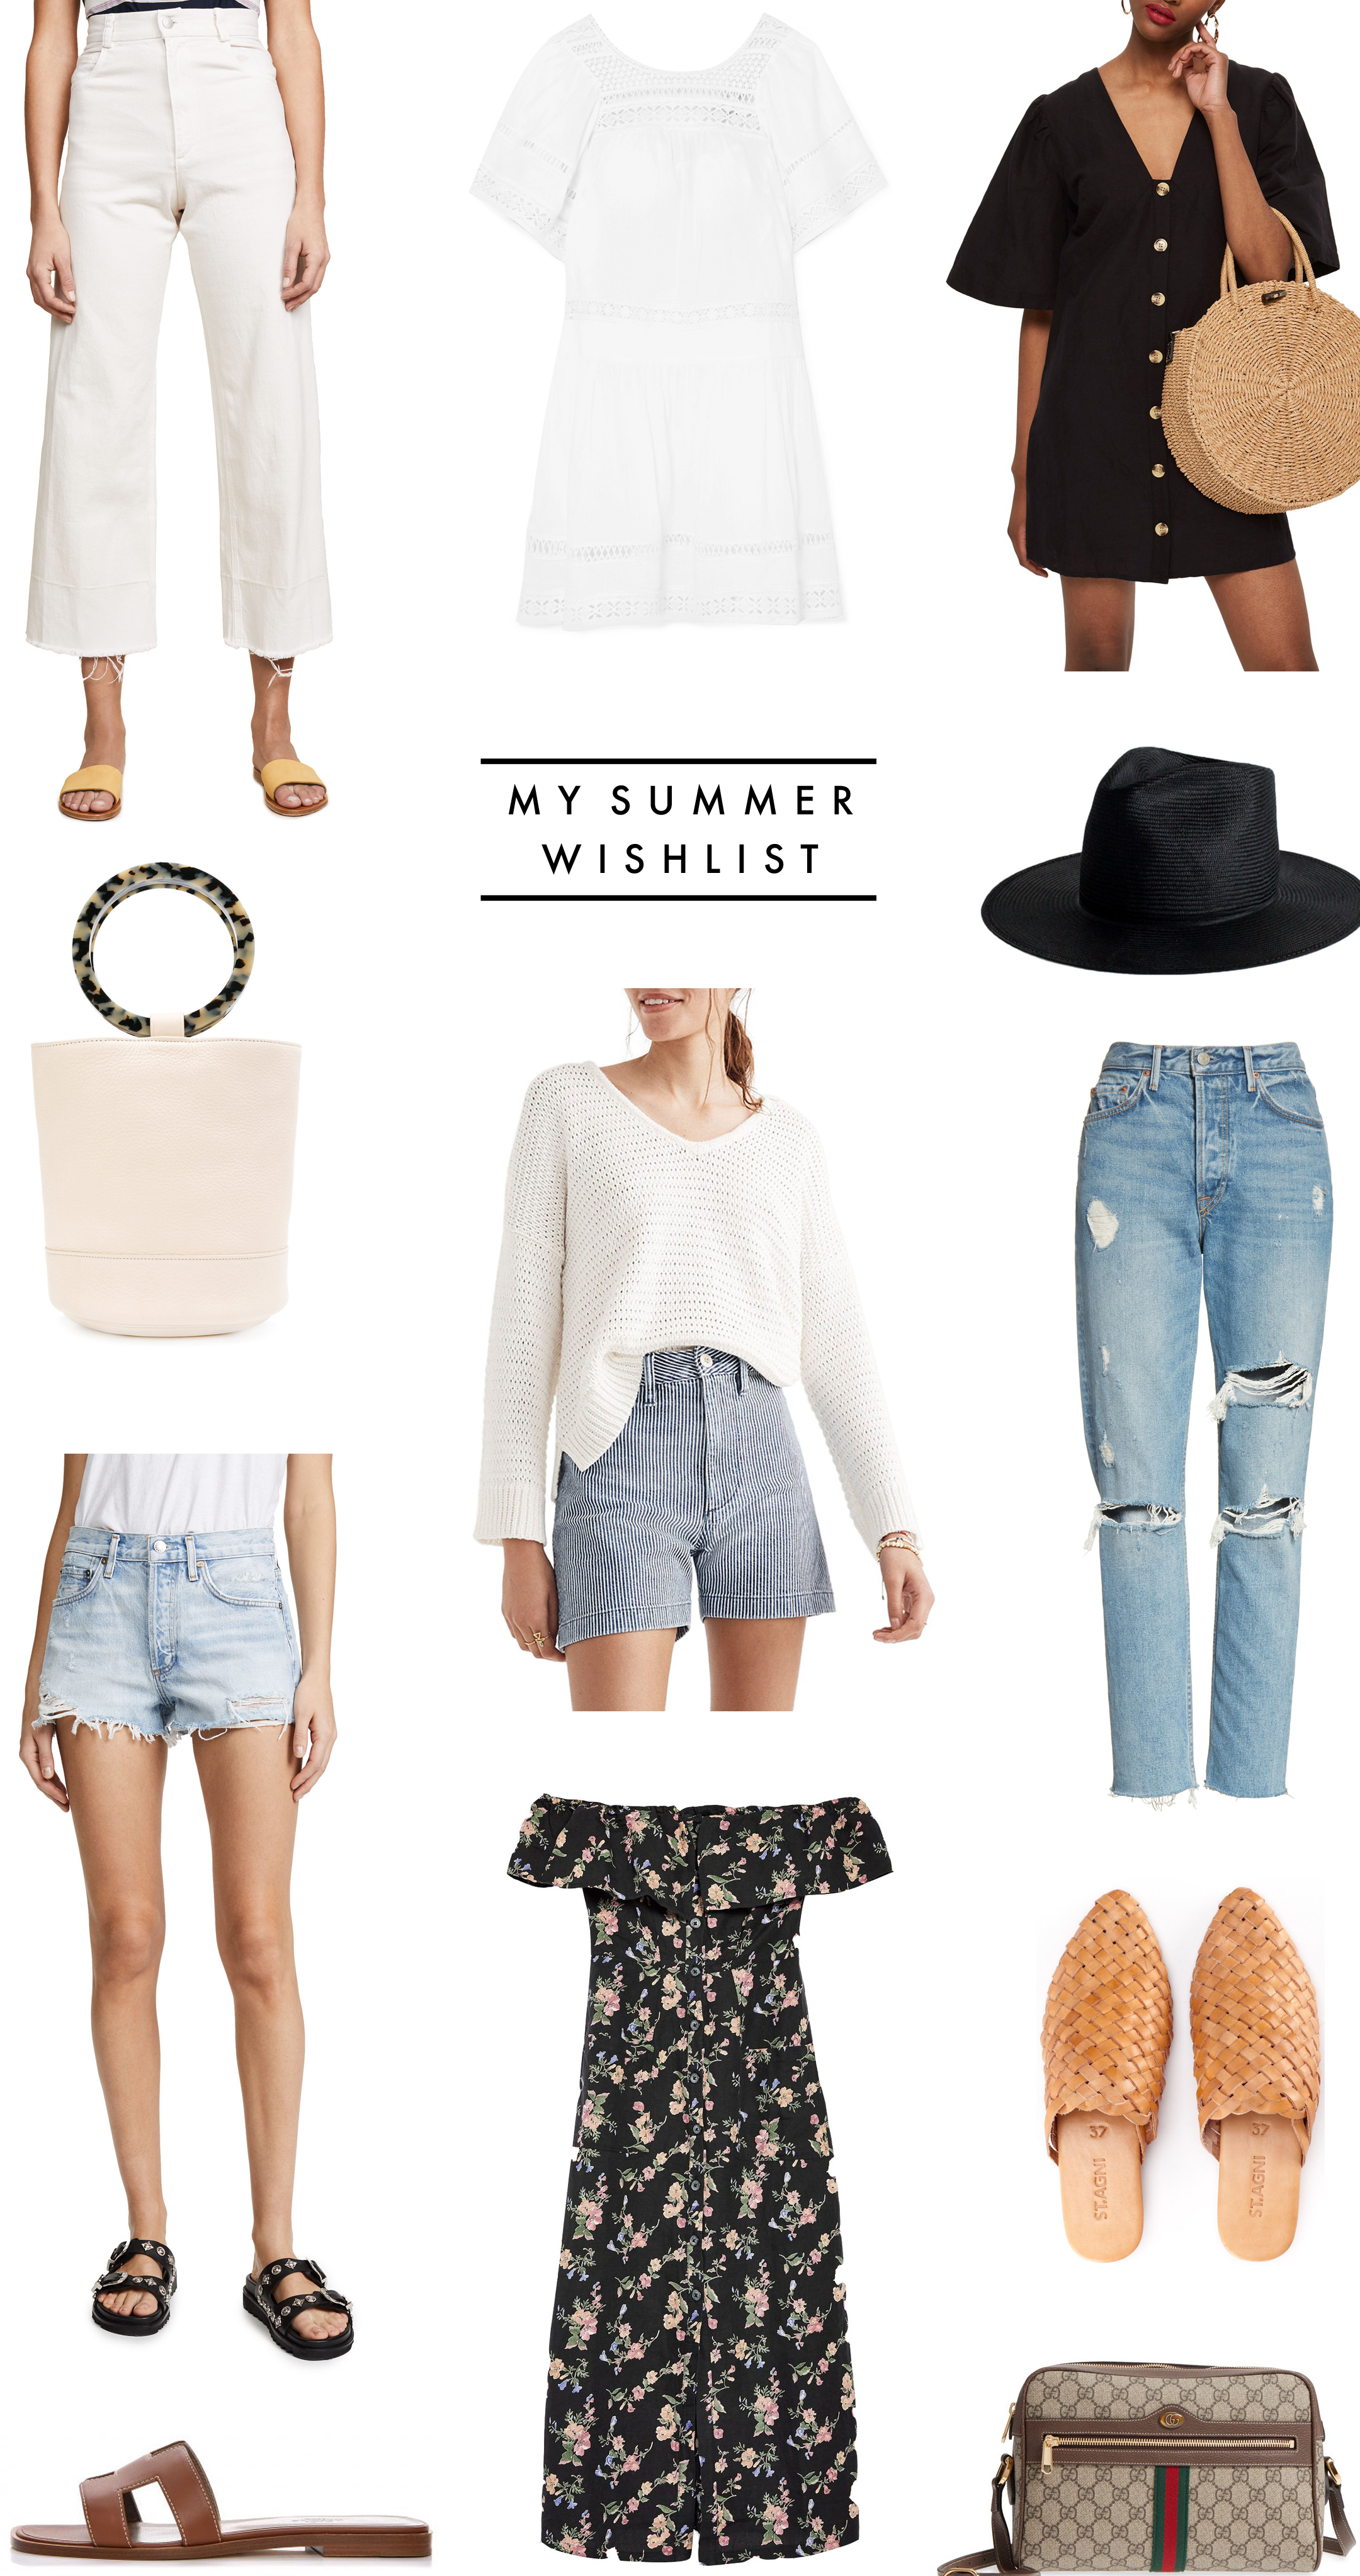 MY SUMMER WISHLIST